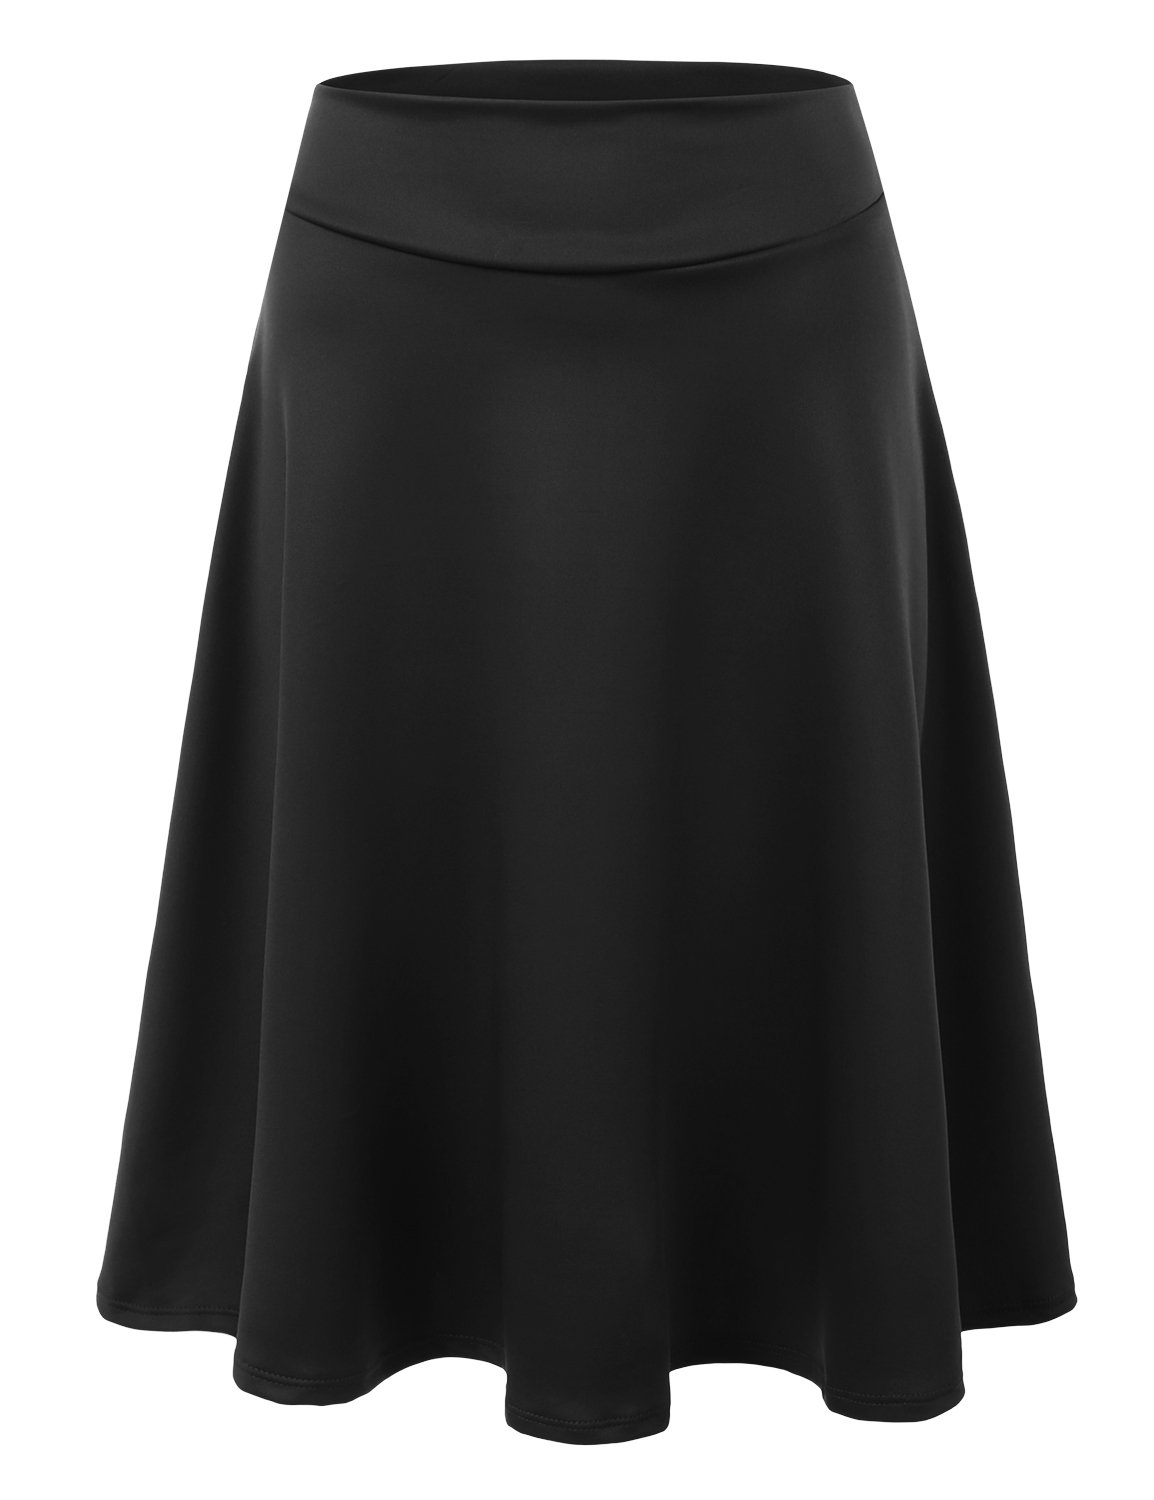 Doublju Womens High Waist Midi A-Line Skirt Black Medium